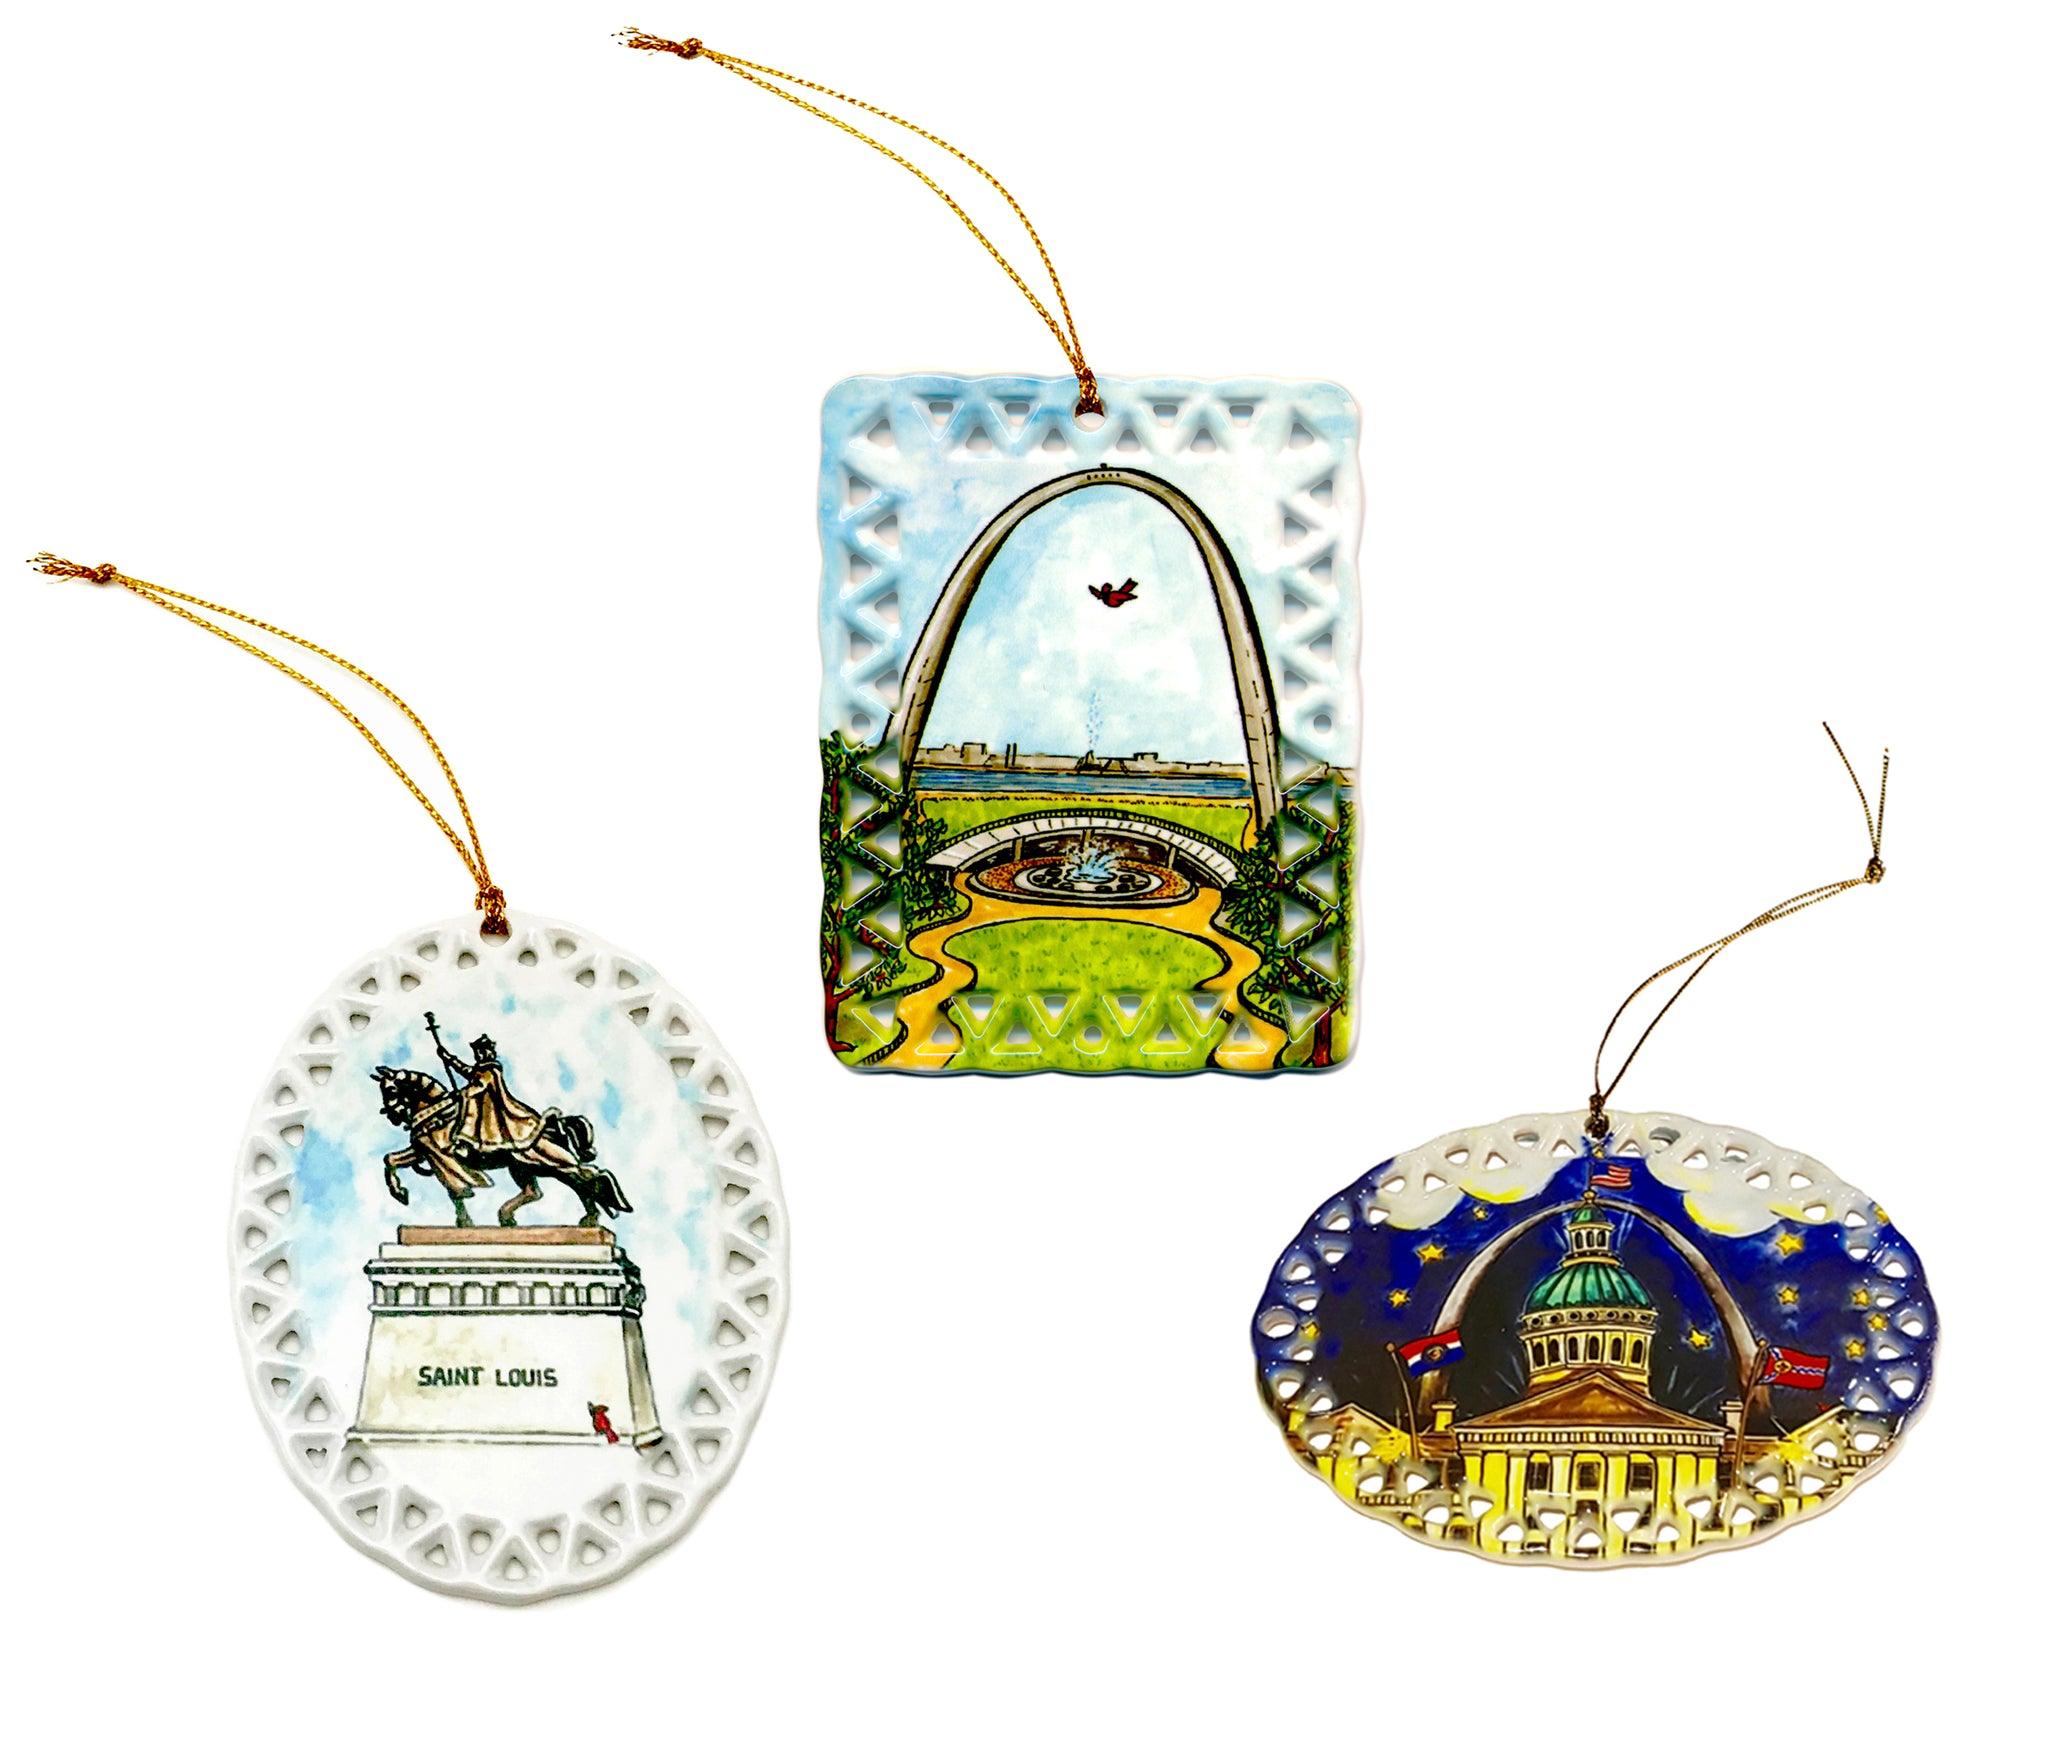 <br>Ceramic Ornaments<br>Limited Edition<br><br>Available Online and<br>at Retailers